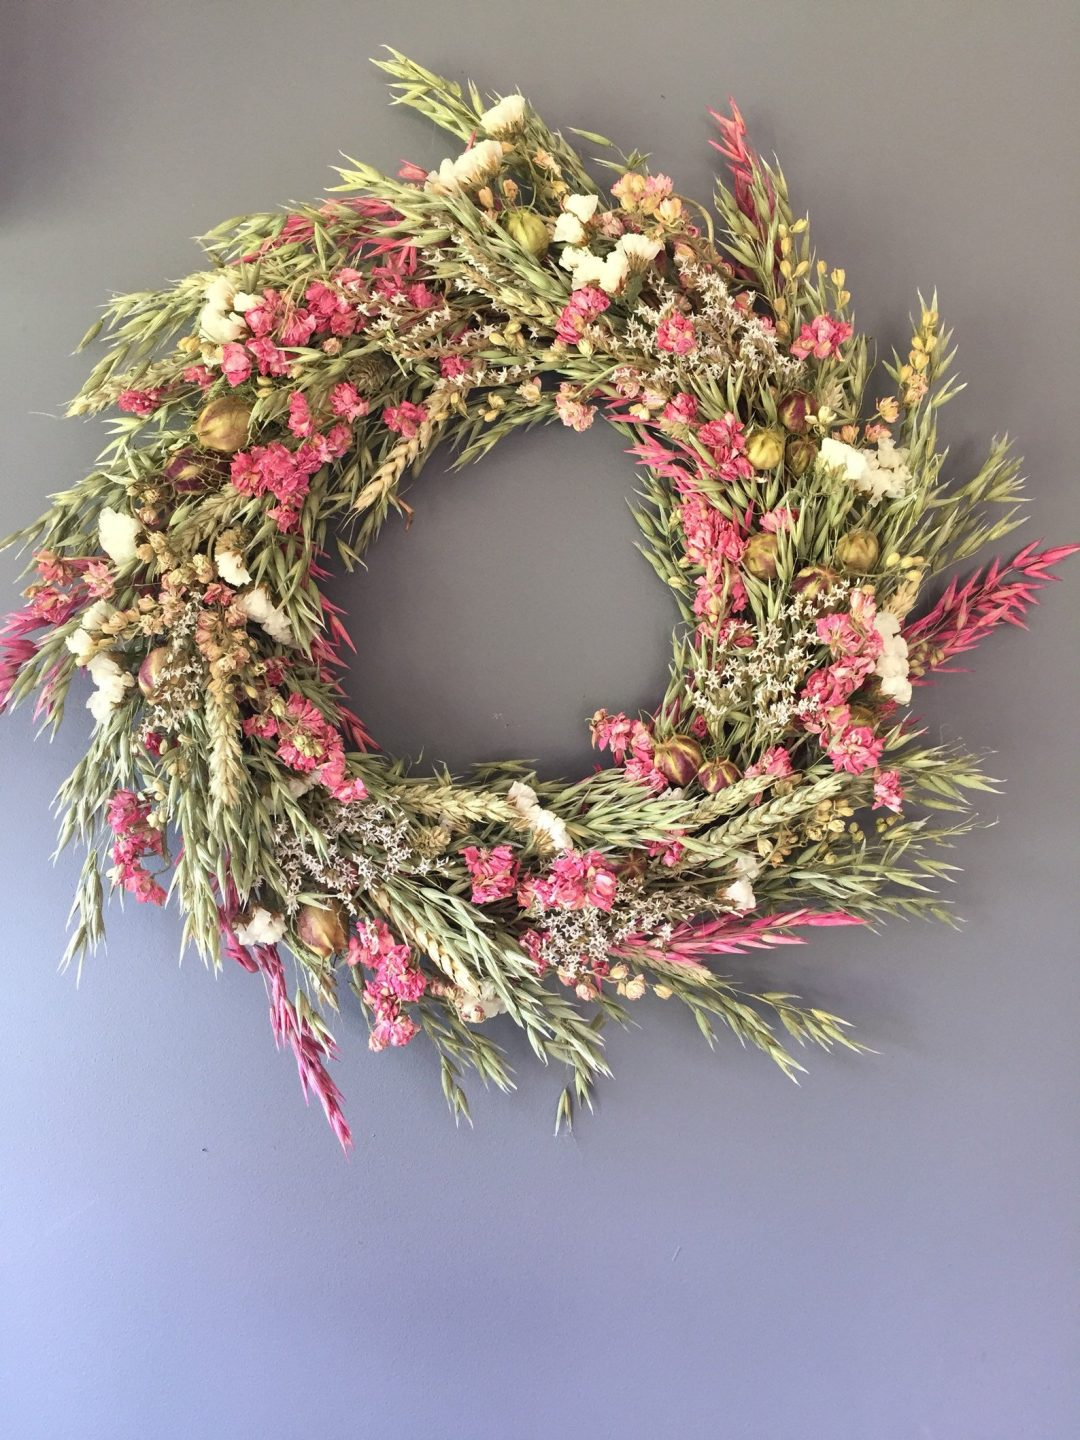 Dried wreaths with flowers and wheat